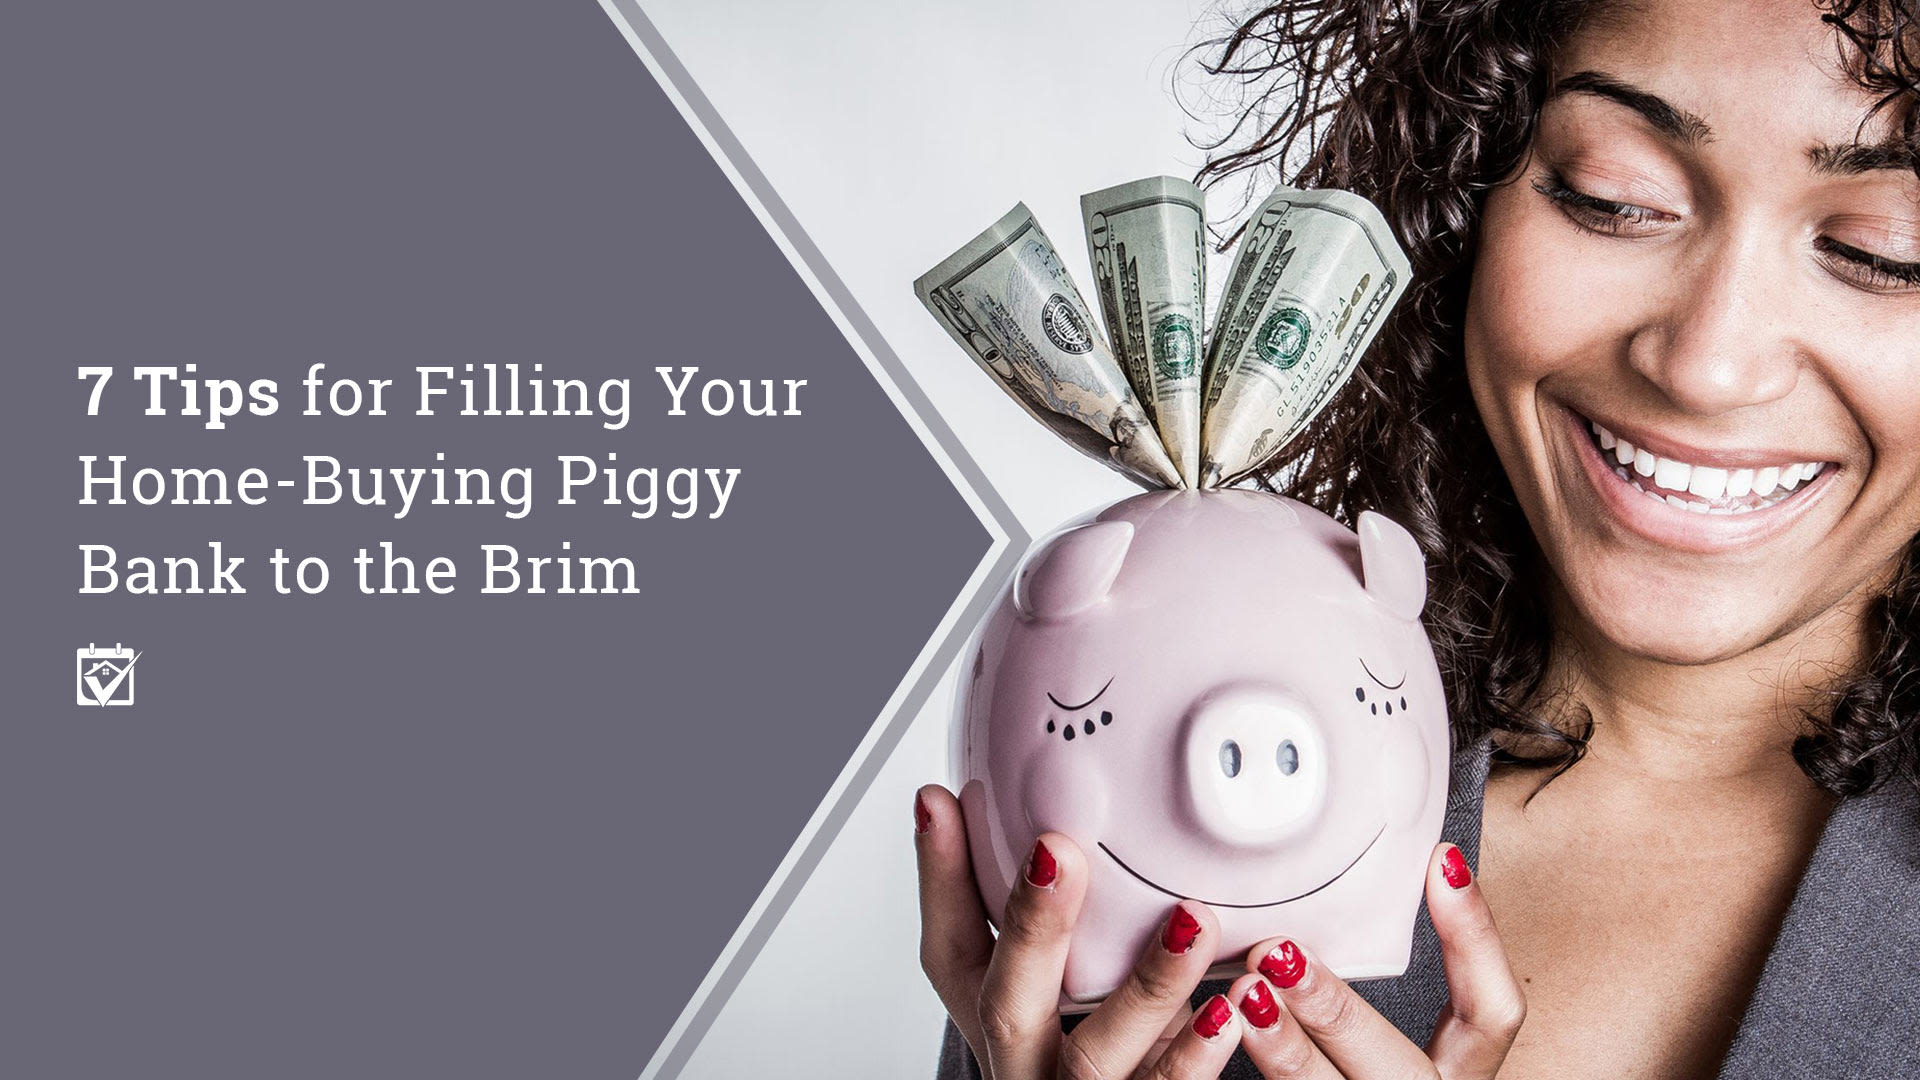 7 Sure Fire Tips for Filling Your Home-Buying Piggy Bank